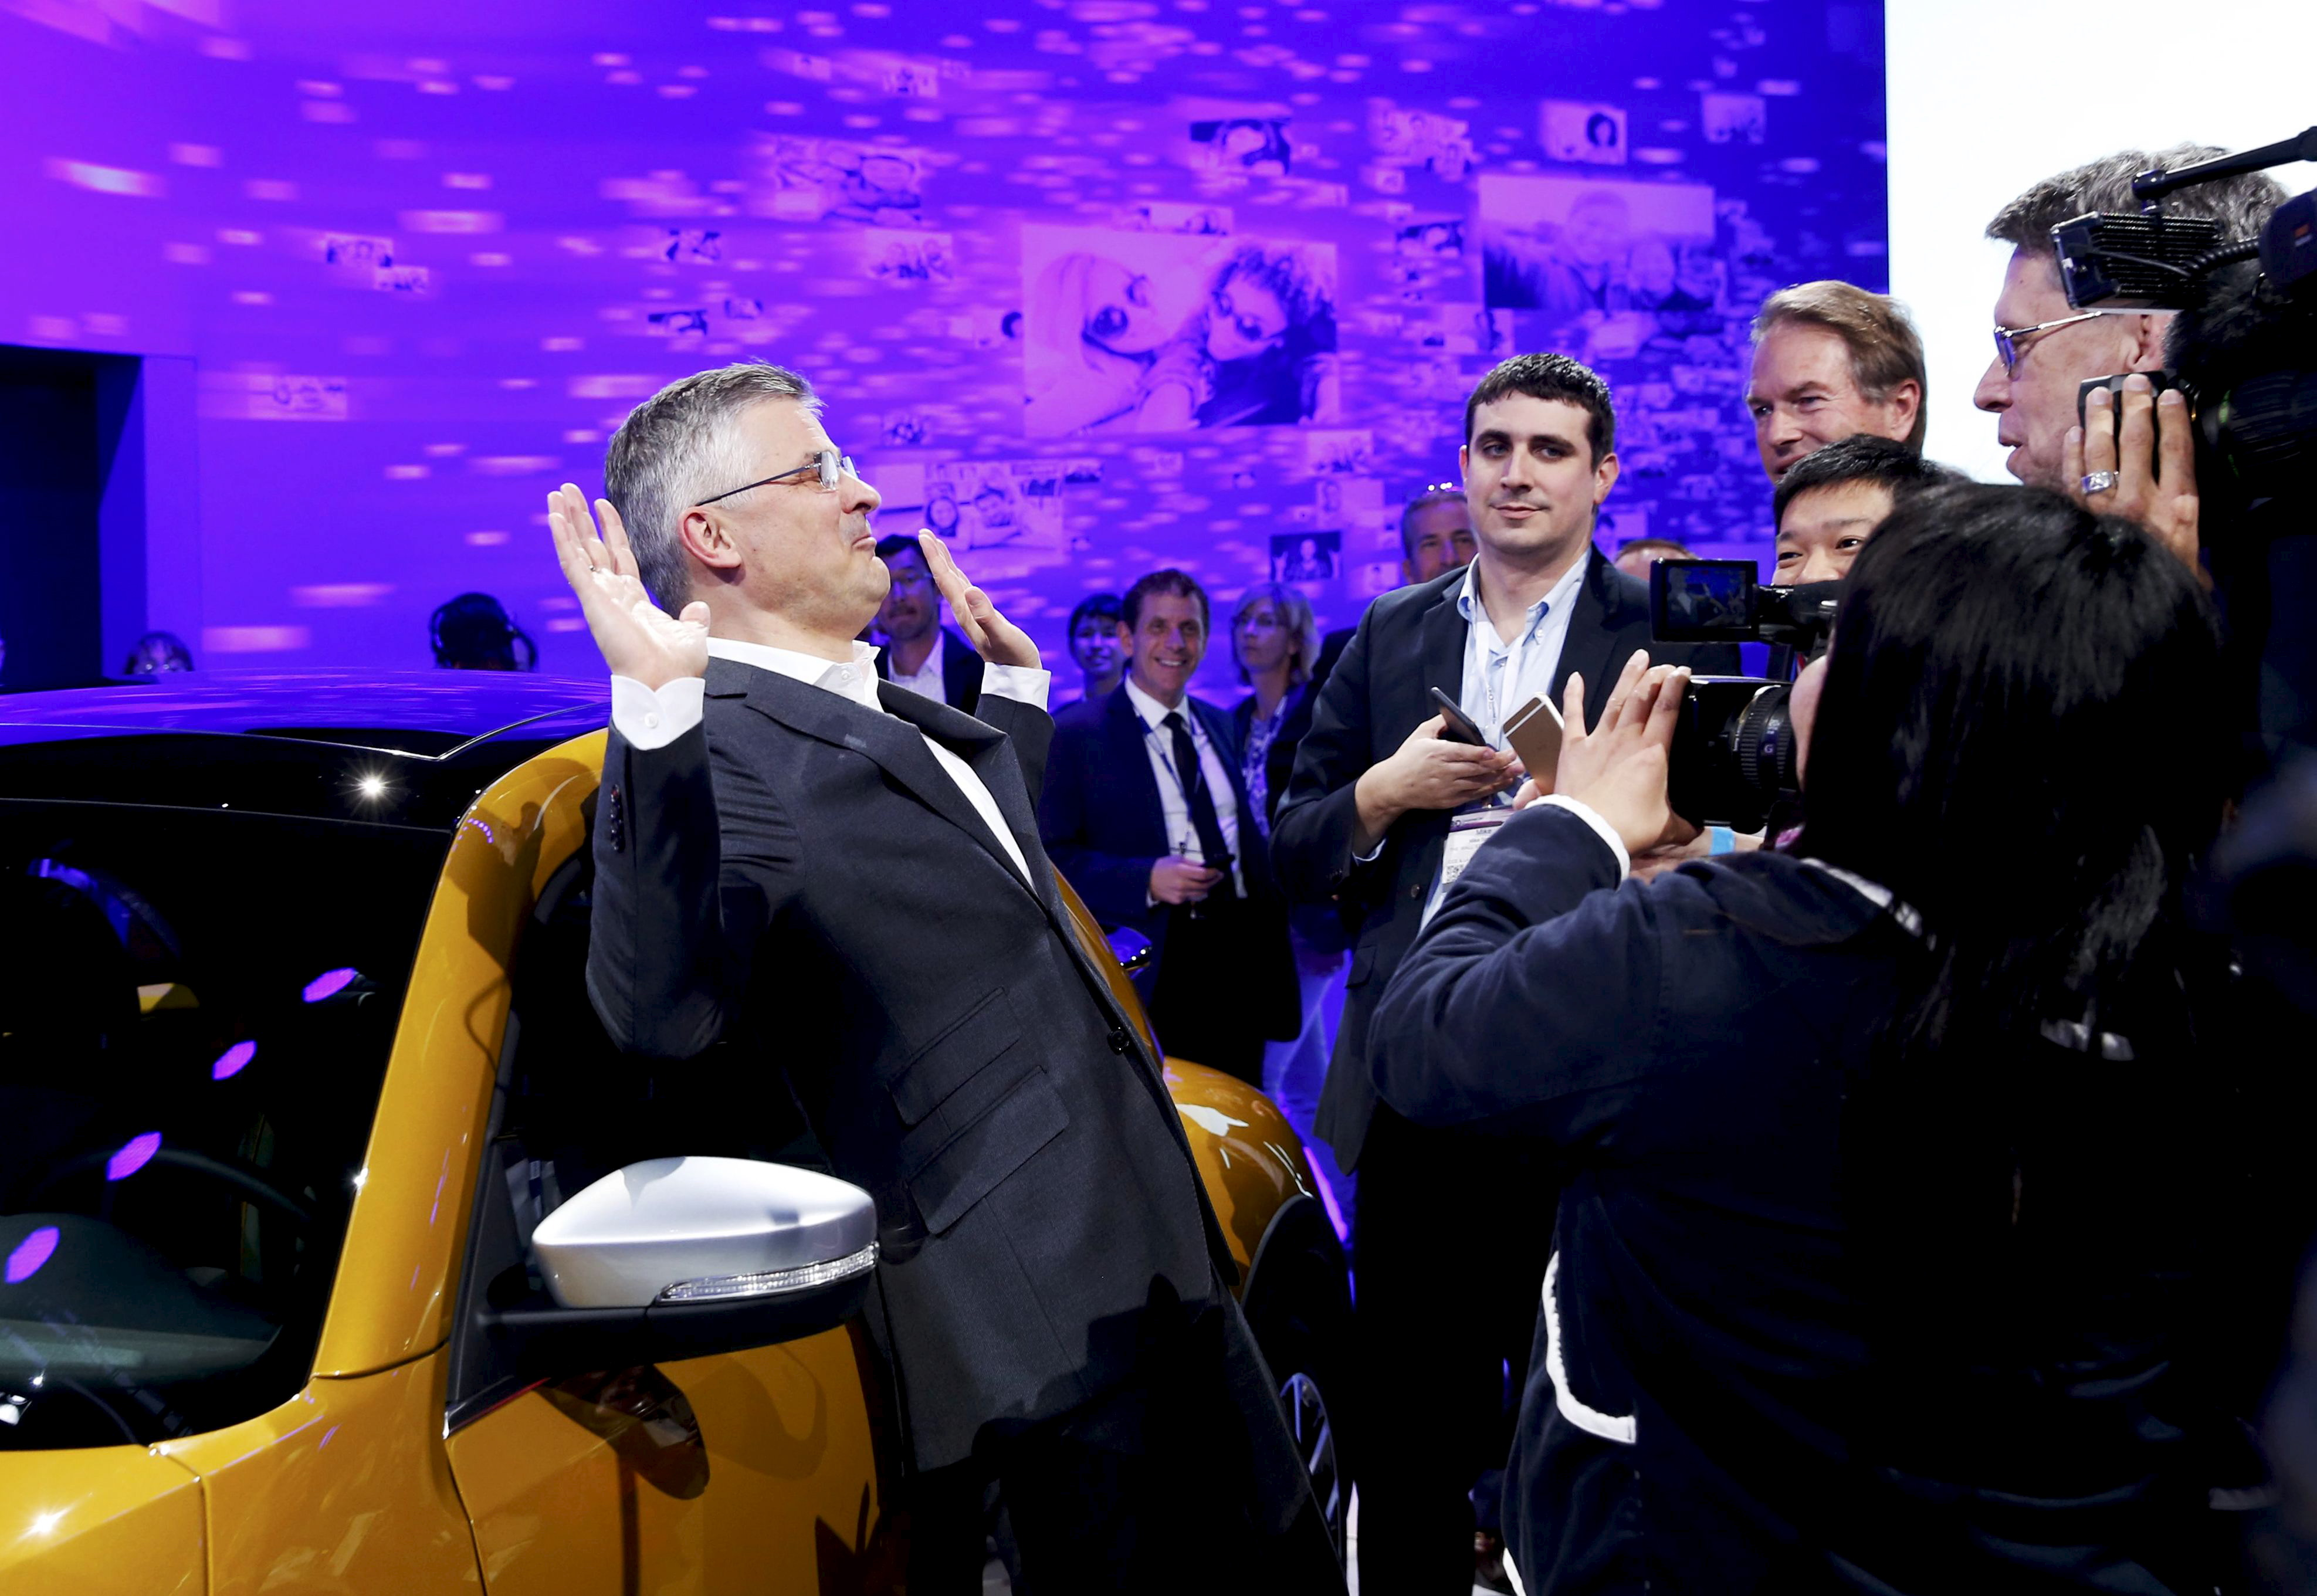 Michael Horn, President and CEO of Volkswagen America, reacts to being mobbed by the media after he apologized for the Volkswagen diesel scandal at the LA Auto Show in Los Angeles